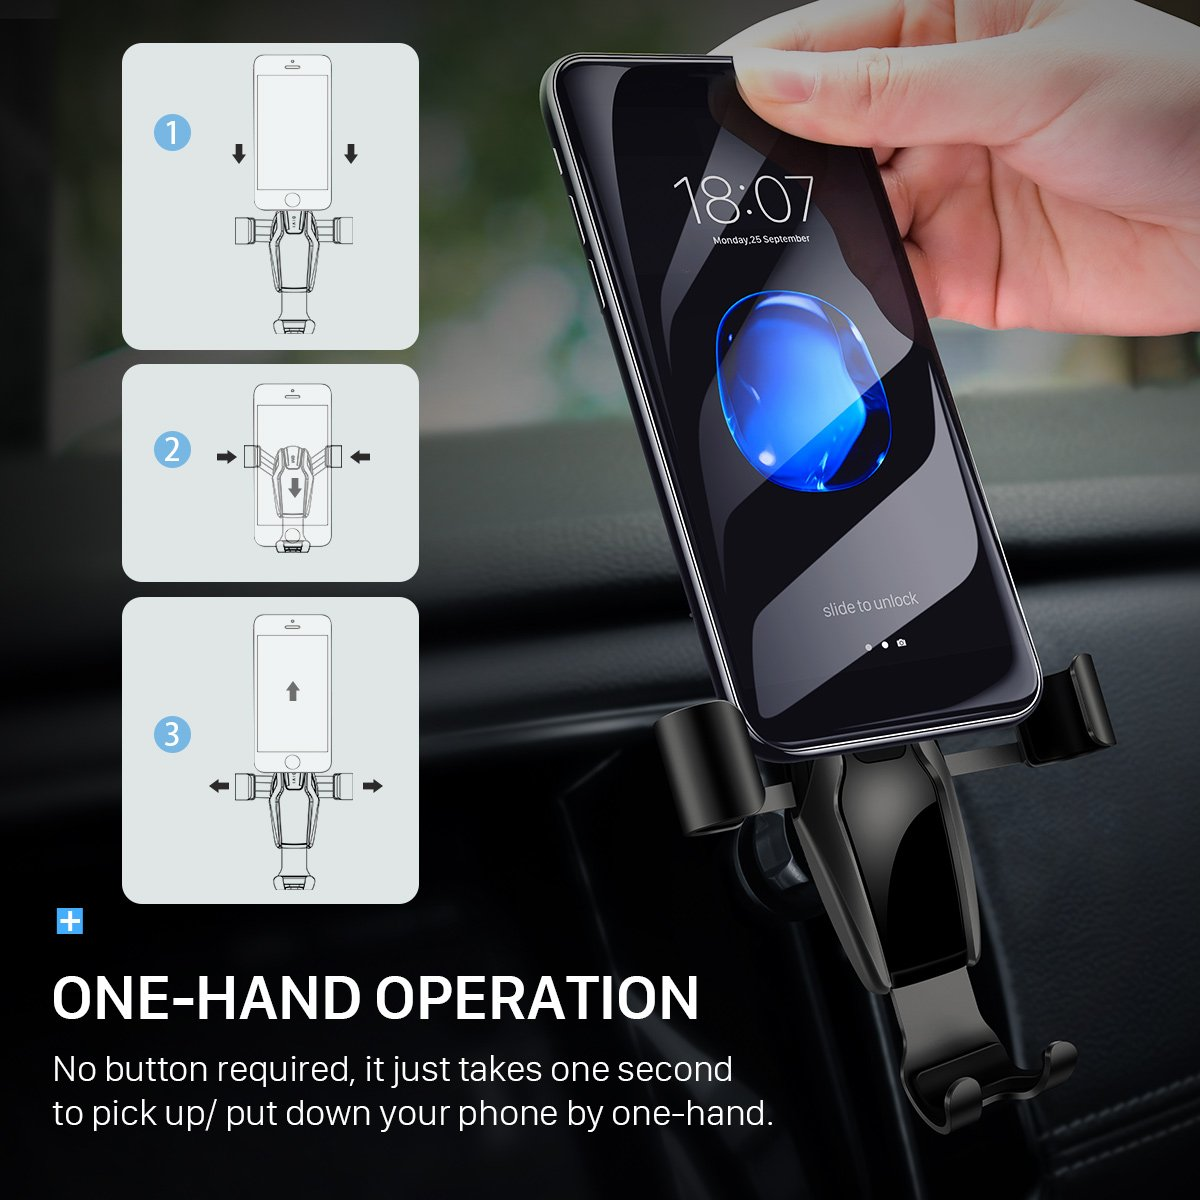 Cell Phone Holder for Car 4351481658 Divi Ainope Gravity Car Phone Mount Auto-Clamping Air Vent Car Phone Holder Universal Car Phone Mount Compatible iPhone Xs MAX//X//8//7 Galaxy Note 9//S9 Plus//S8//S7- Black